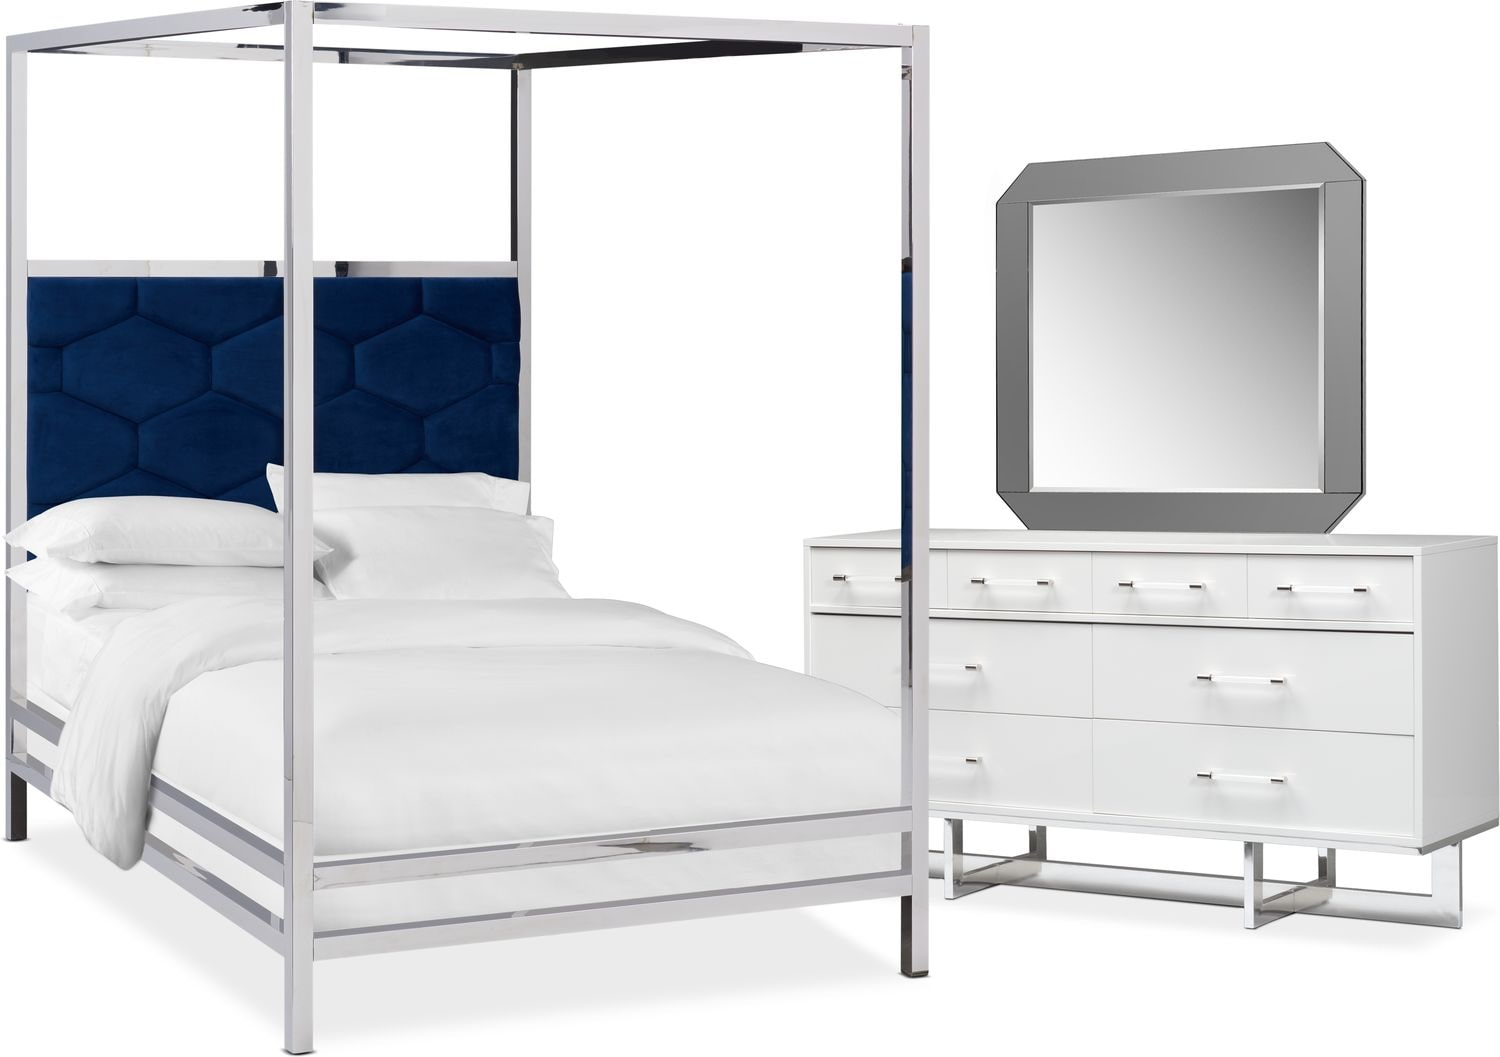 Concerto 5 Piece Canopy Bedroom Set With Dresser And Mirror Value City Furniture And Mattresses